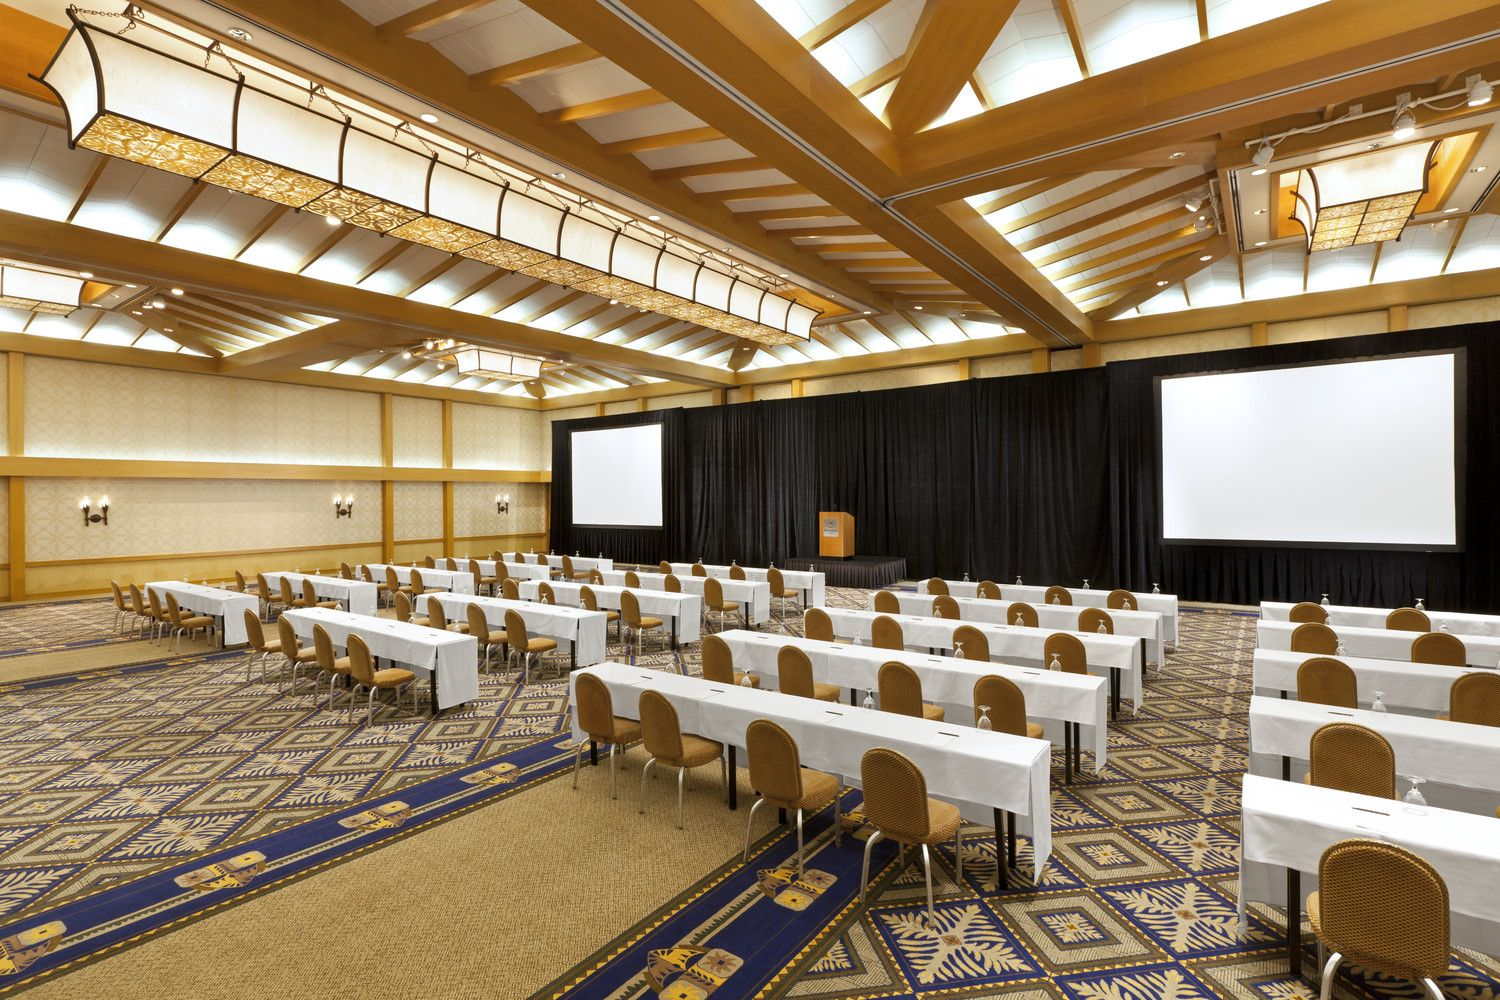 Meeting Space in Maui - Maui Ballroom